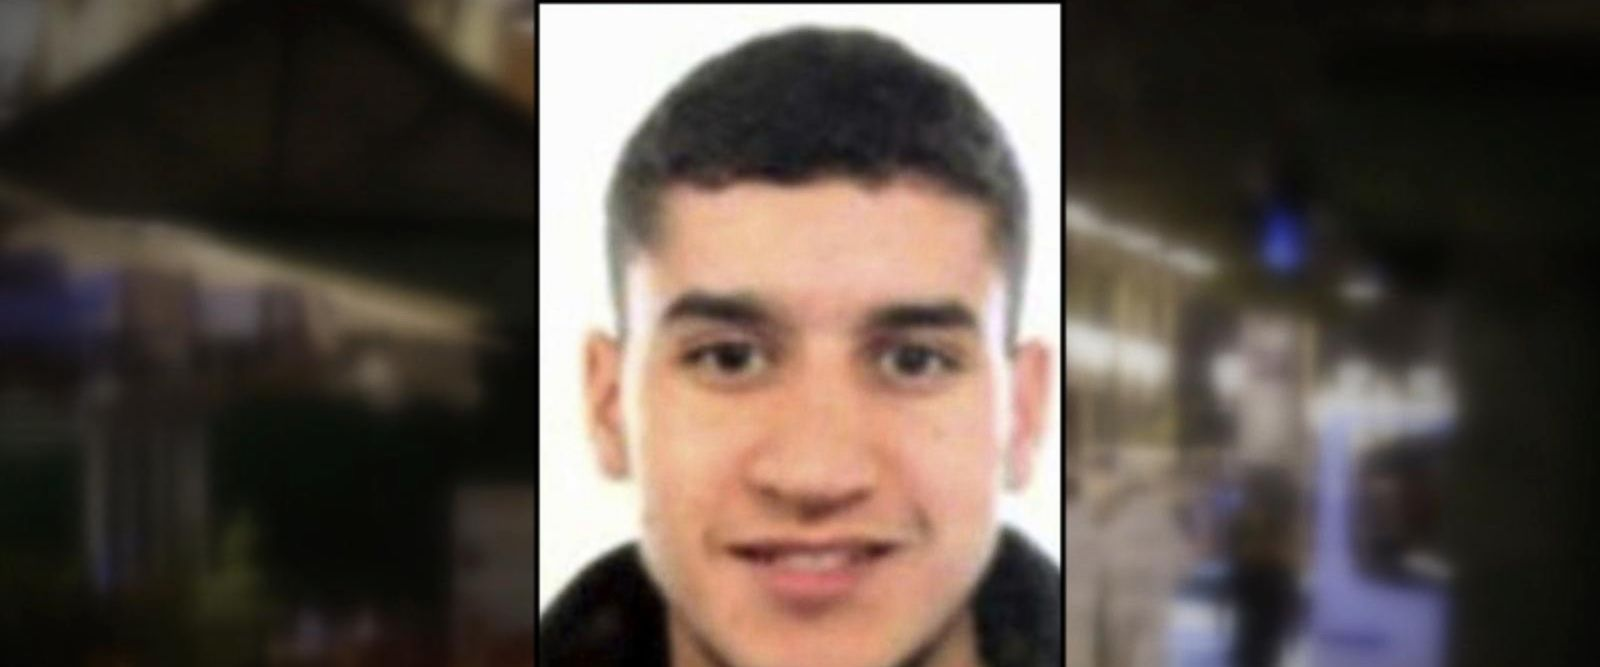 VIDEO: Barcelona terror suspect may have fled the country